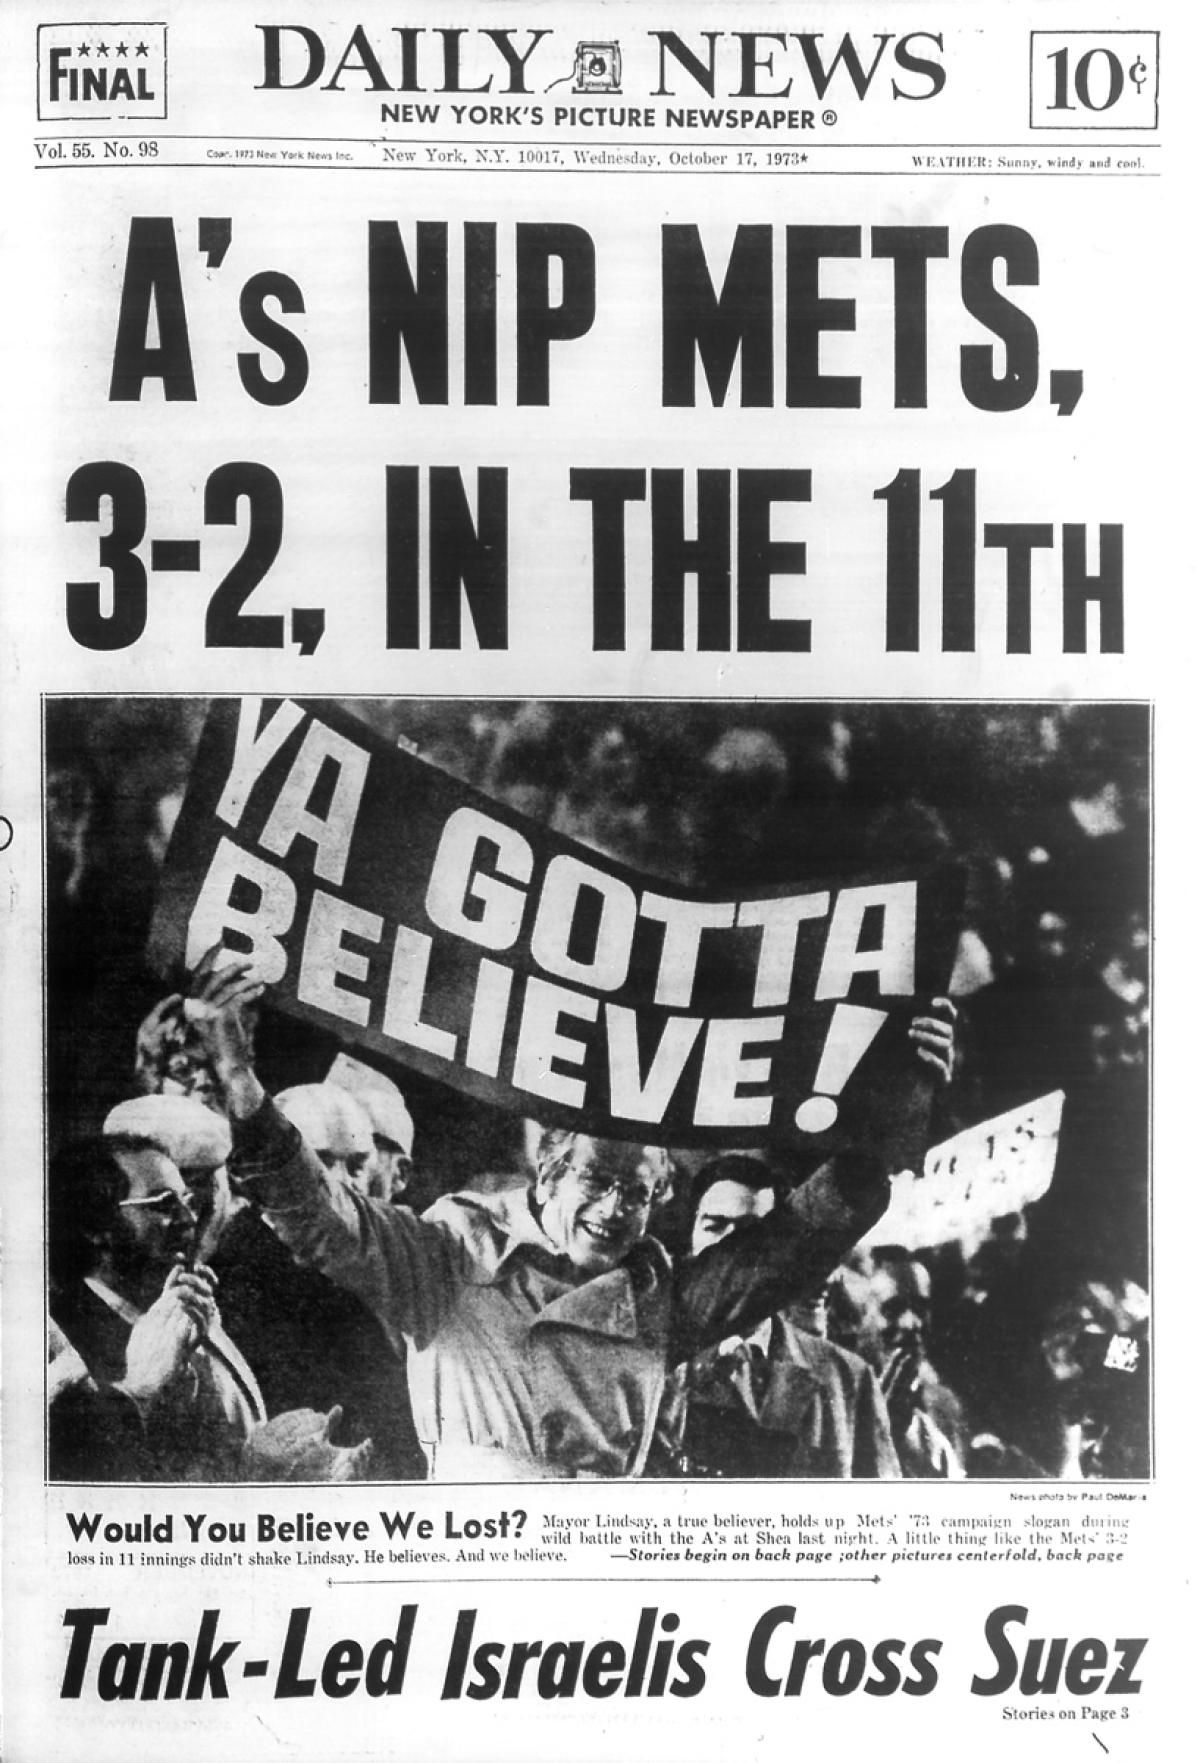 1973 World Series Game 3 Mets vs. Oakland A's Mets